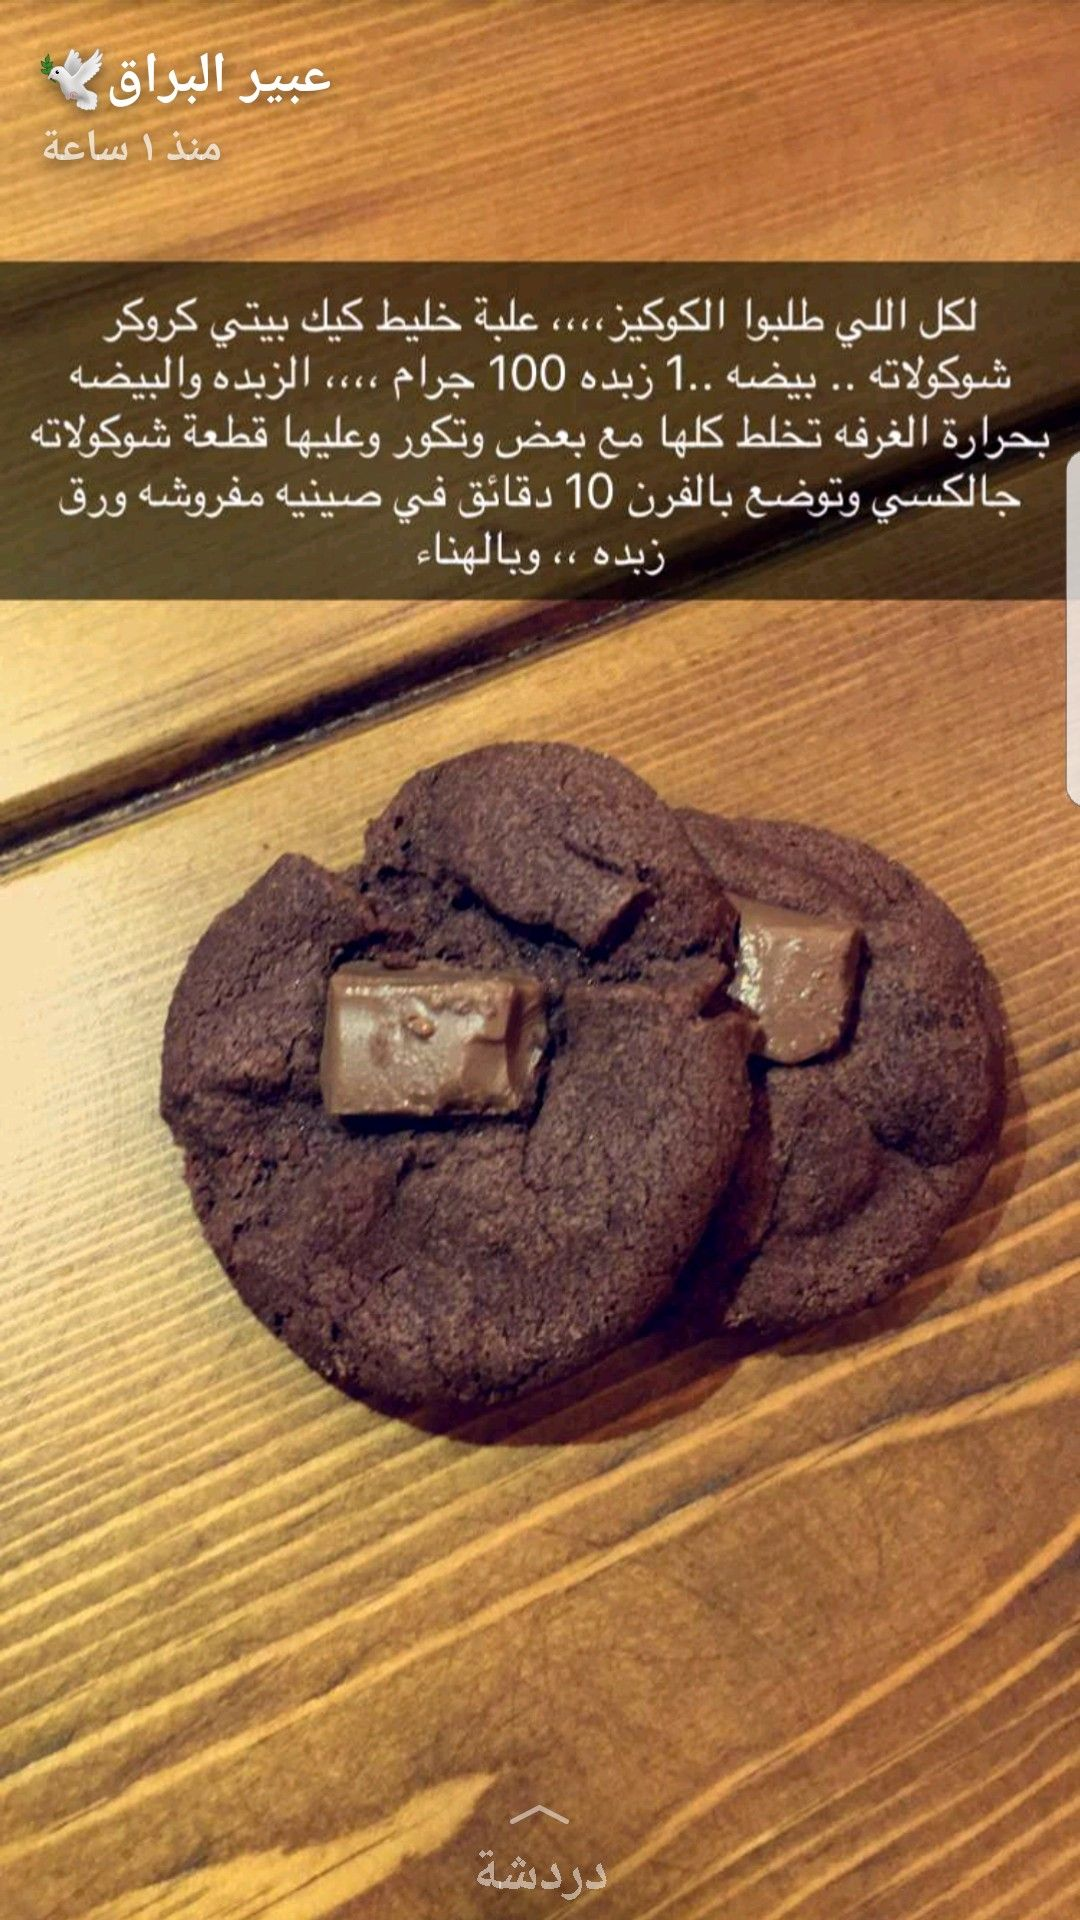 Pin By Mzoon27 On طبخ With Images Desserts Chocolate Food